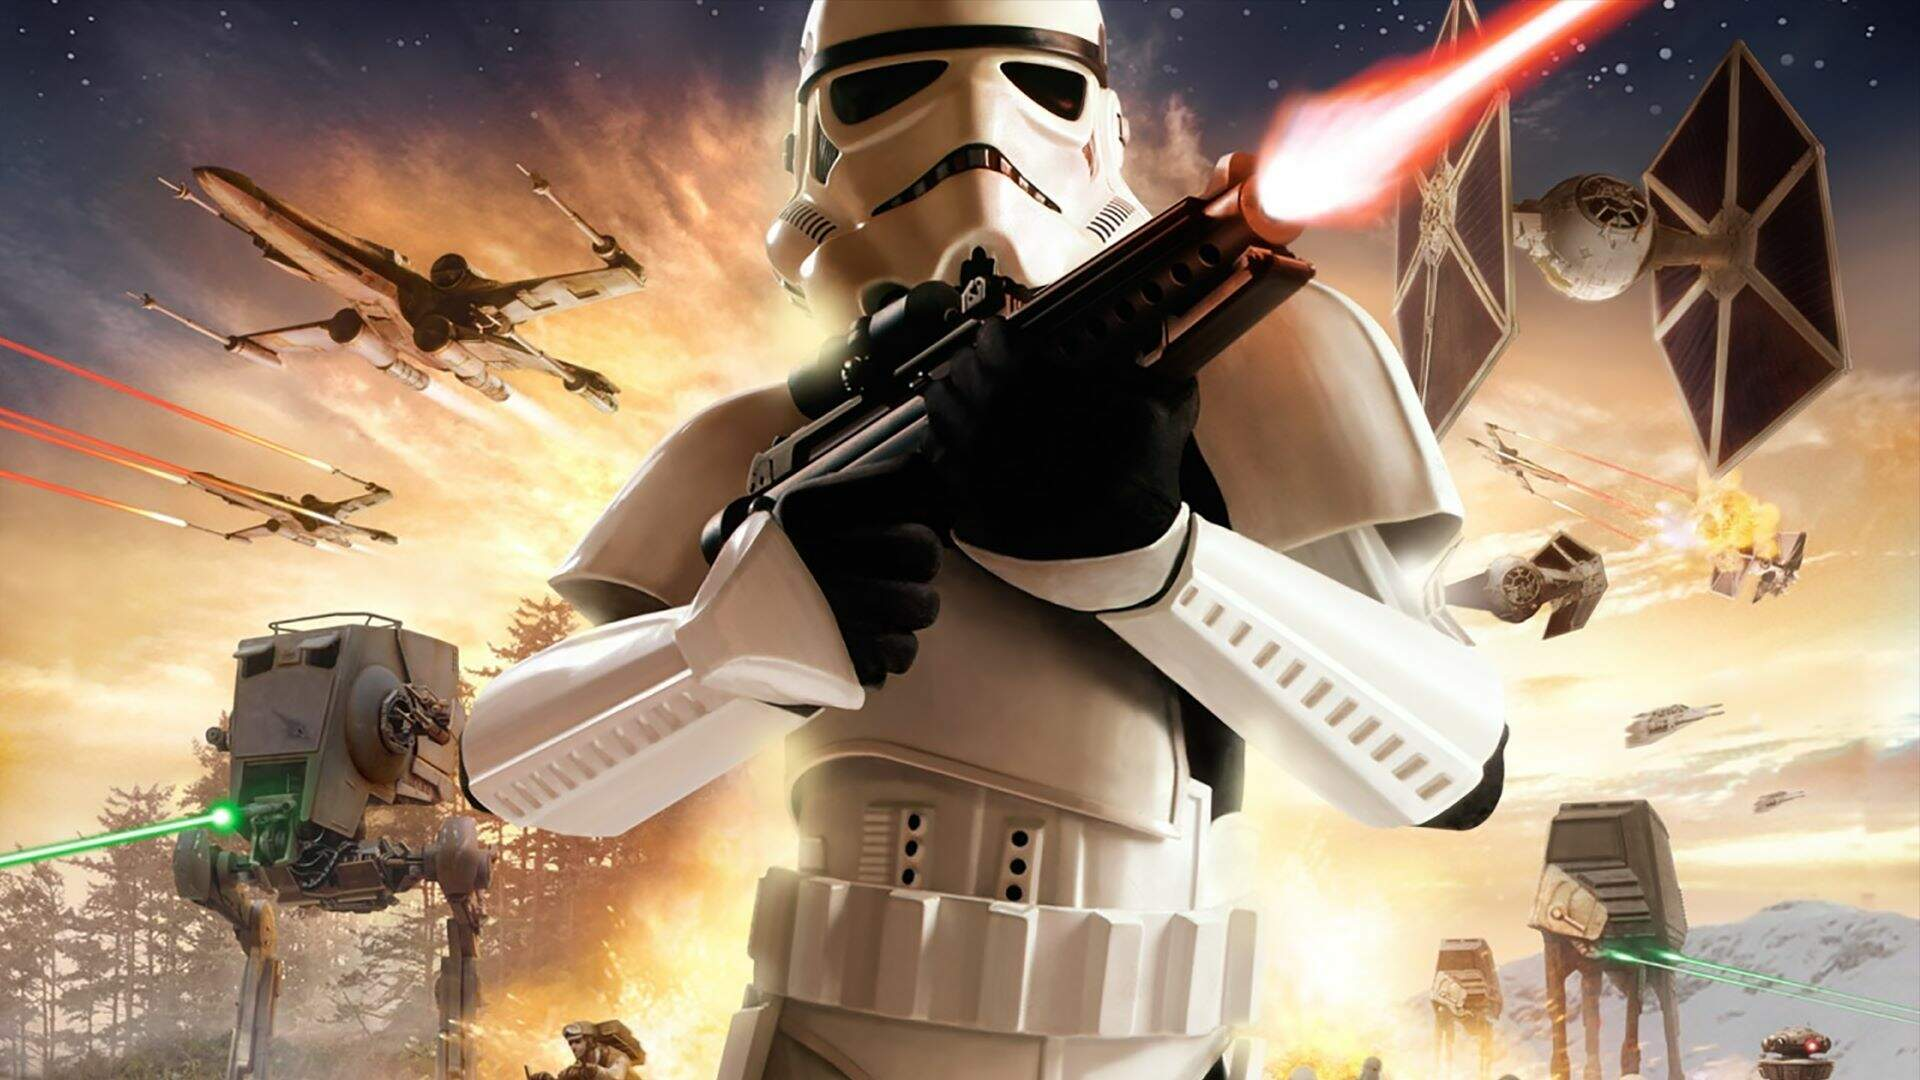 The Original Star Wars Battlefront Gets Online Multiplayer on Steam